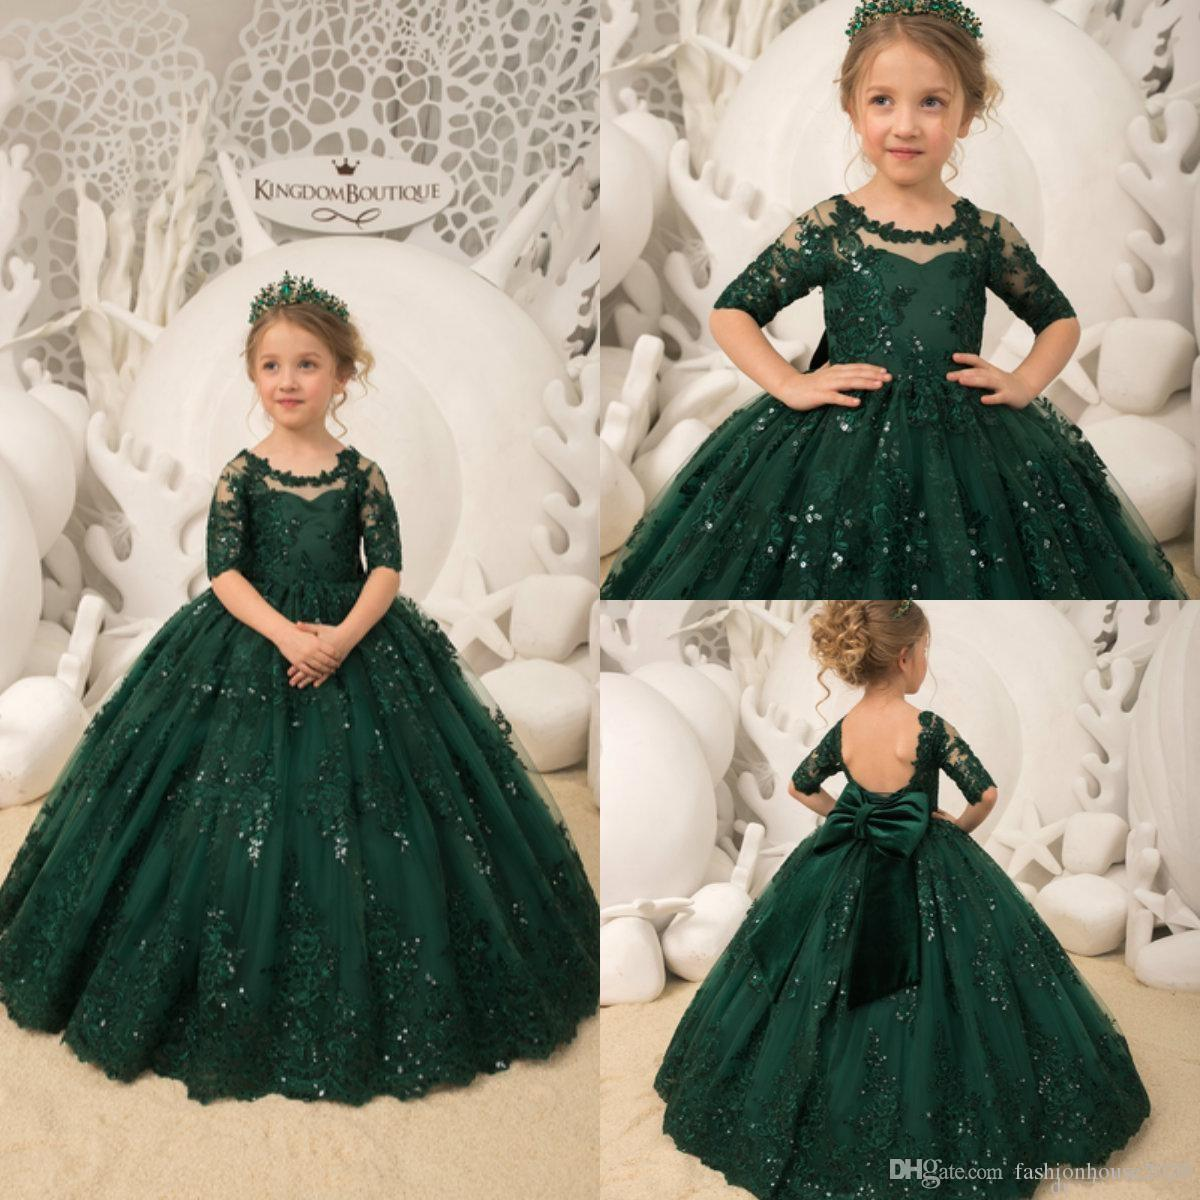 fef0d7e530 2019 New Cheap Dark Green Flower Girls Dresses Jewel 1/2 Sleeve Lace  Appliques Sequins Ball Gown Backless Child Birthday Girls Pageant Gowns Girls  Clothes ...